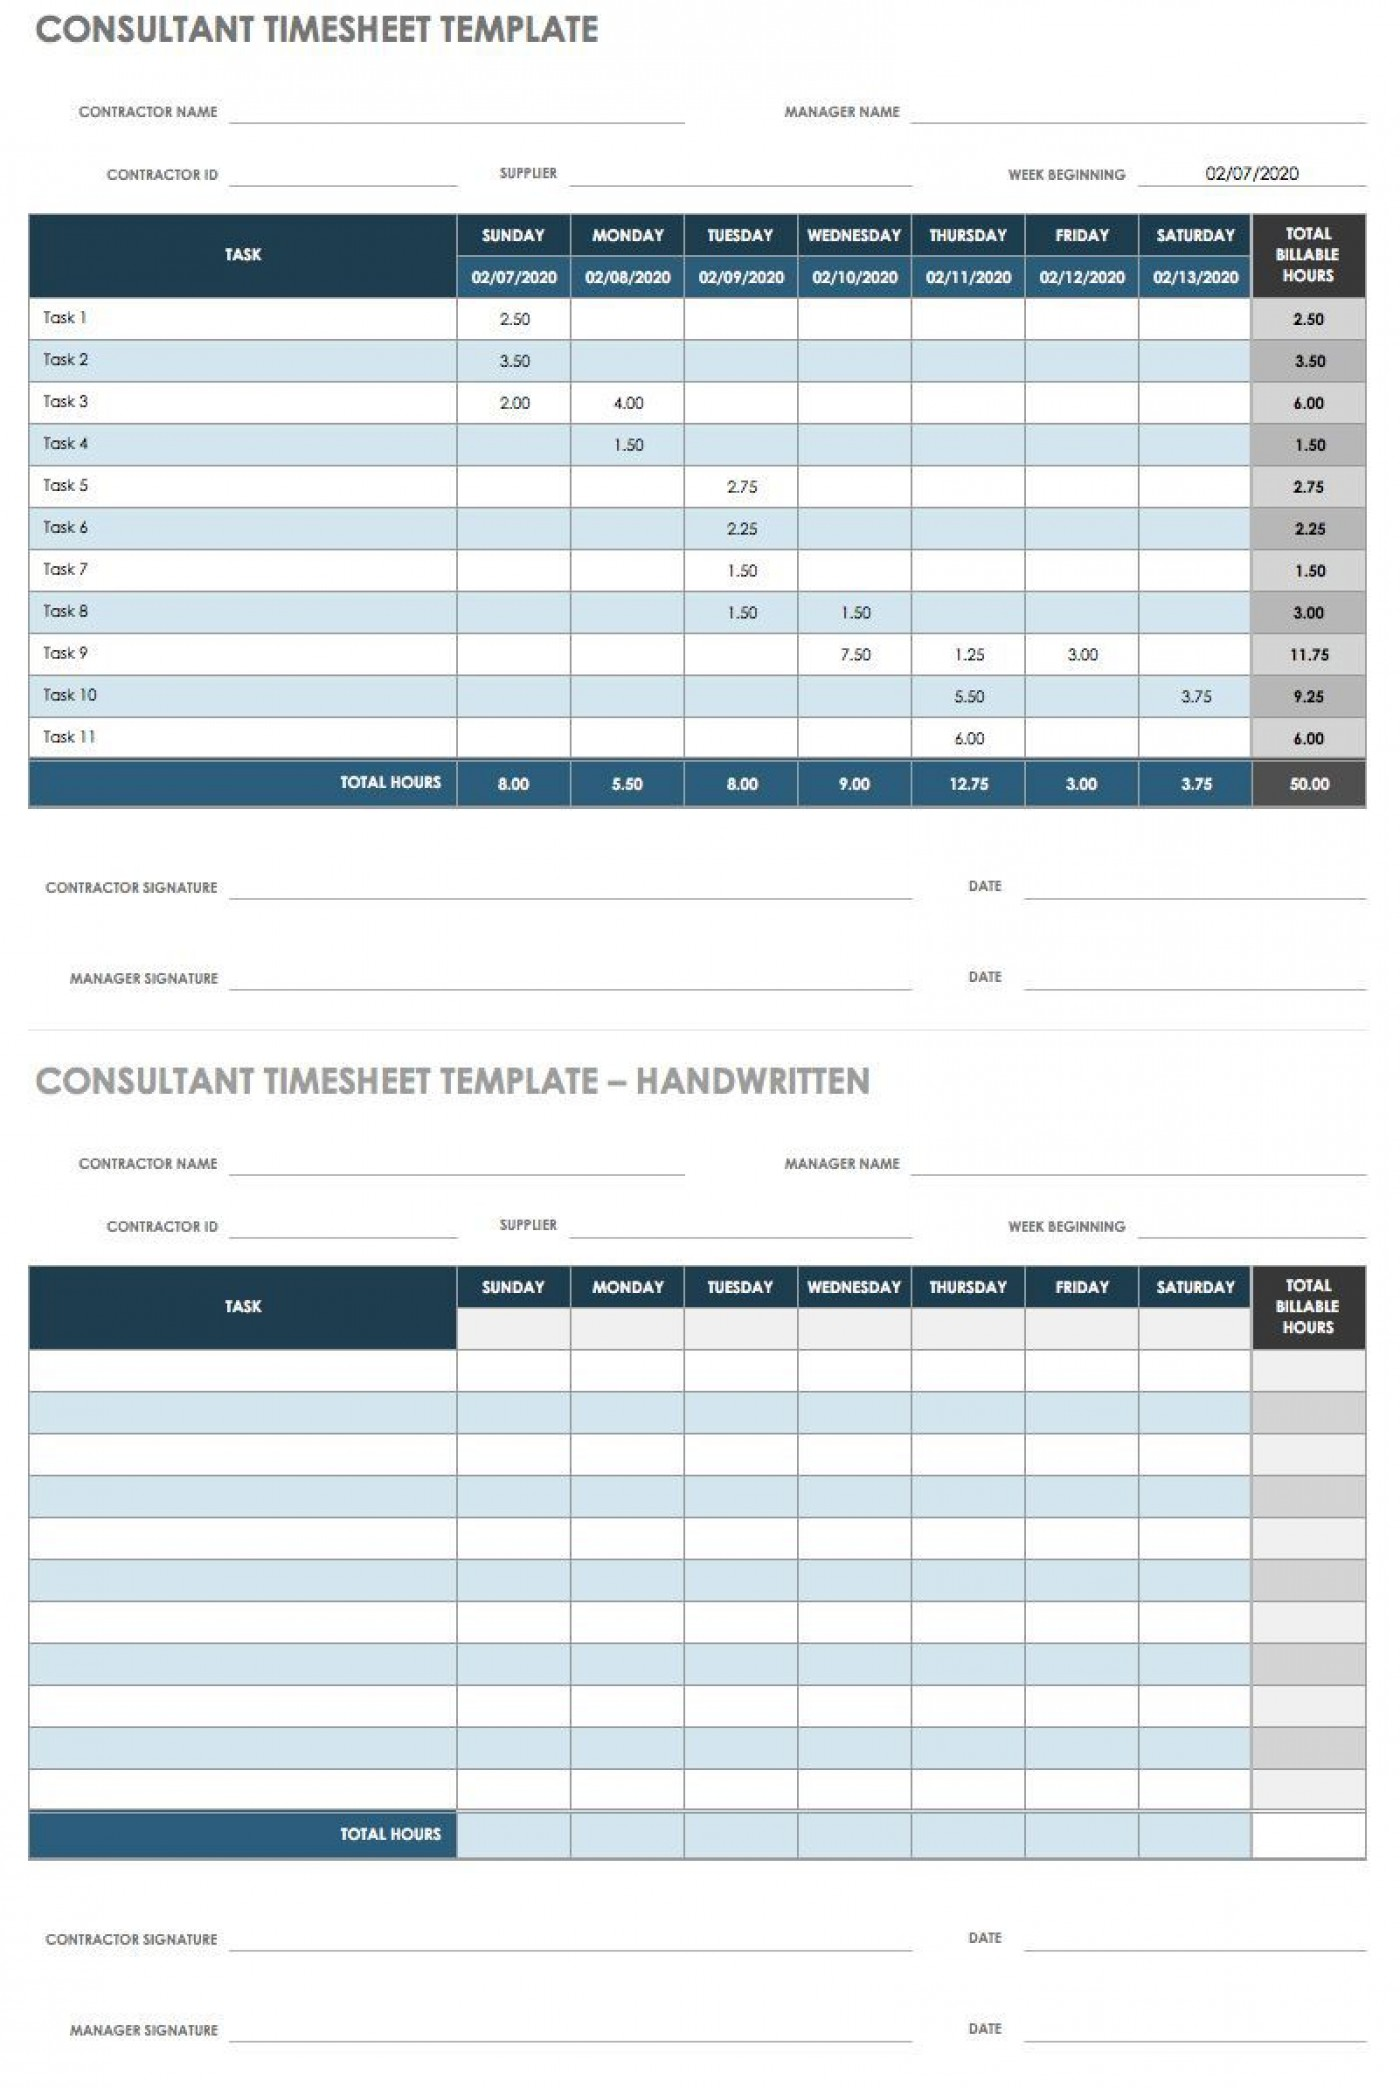 007 Dreaded Employee Time Card Calculator Excel Template High Def 1400